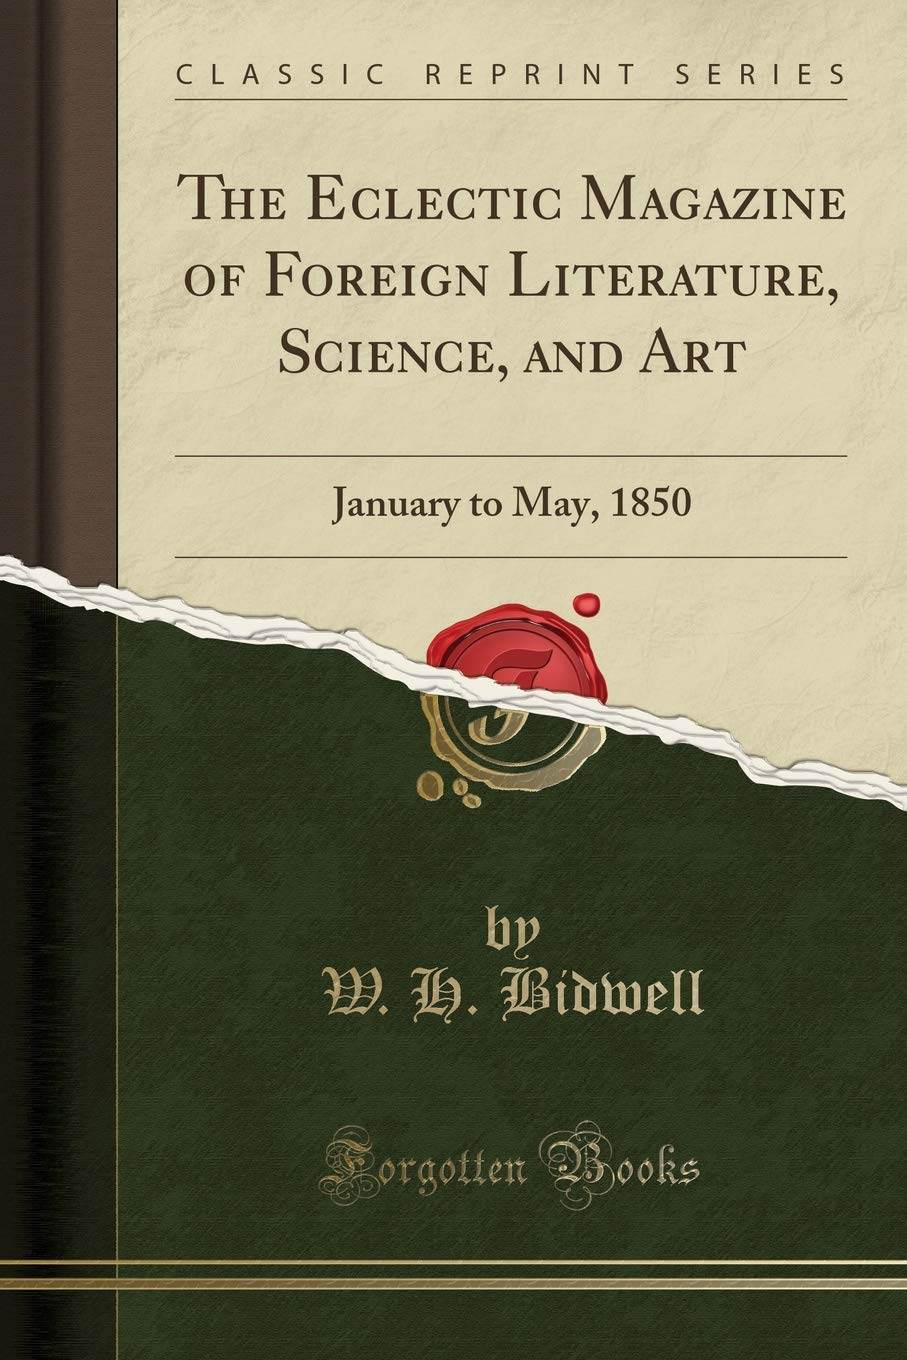 The Eclectic Magazine of Foreign Literature, Science, and Art: January to May, 1850 (Classic Reprint) ebook